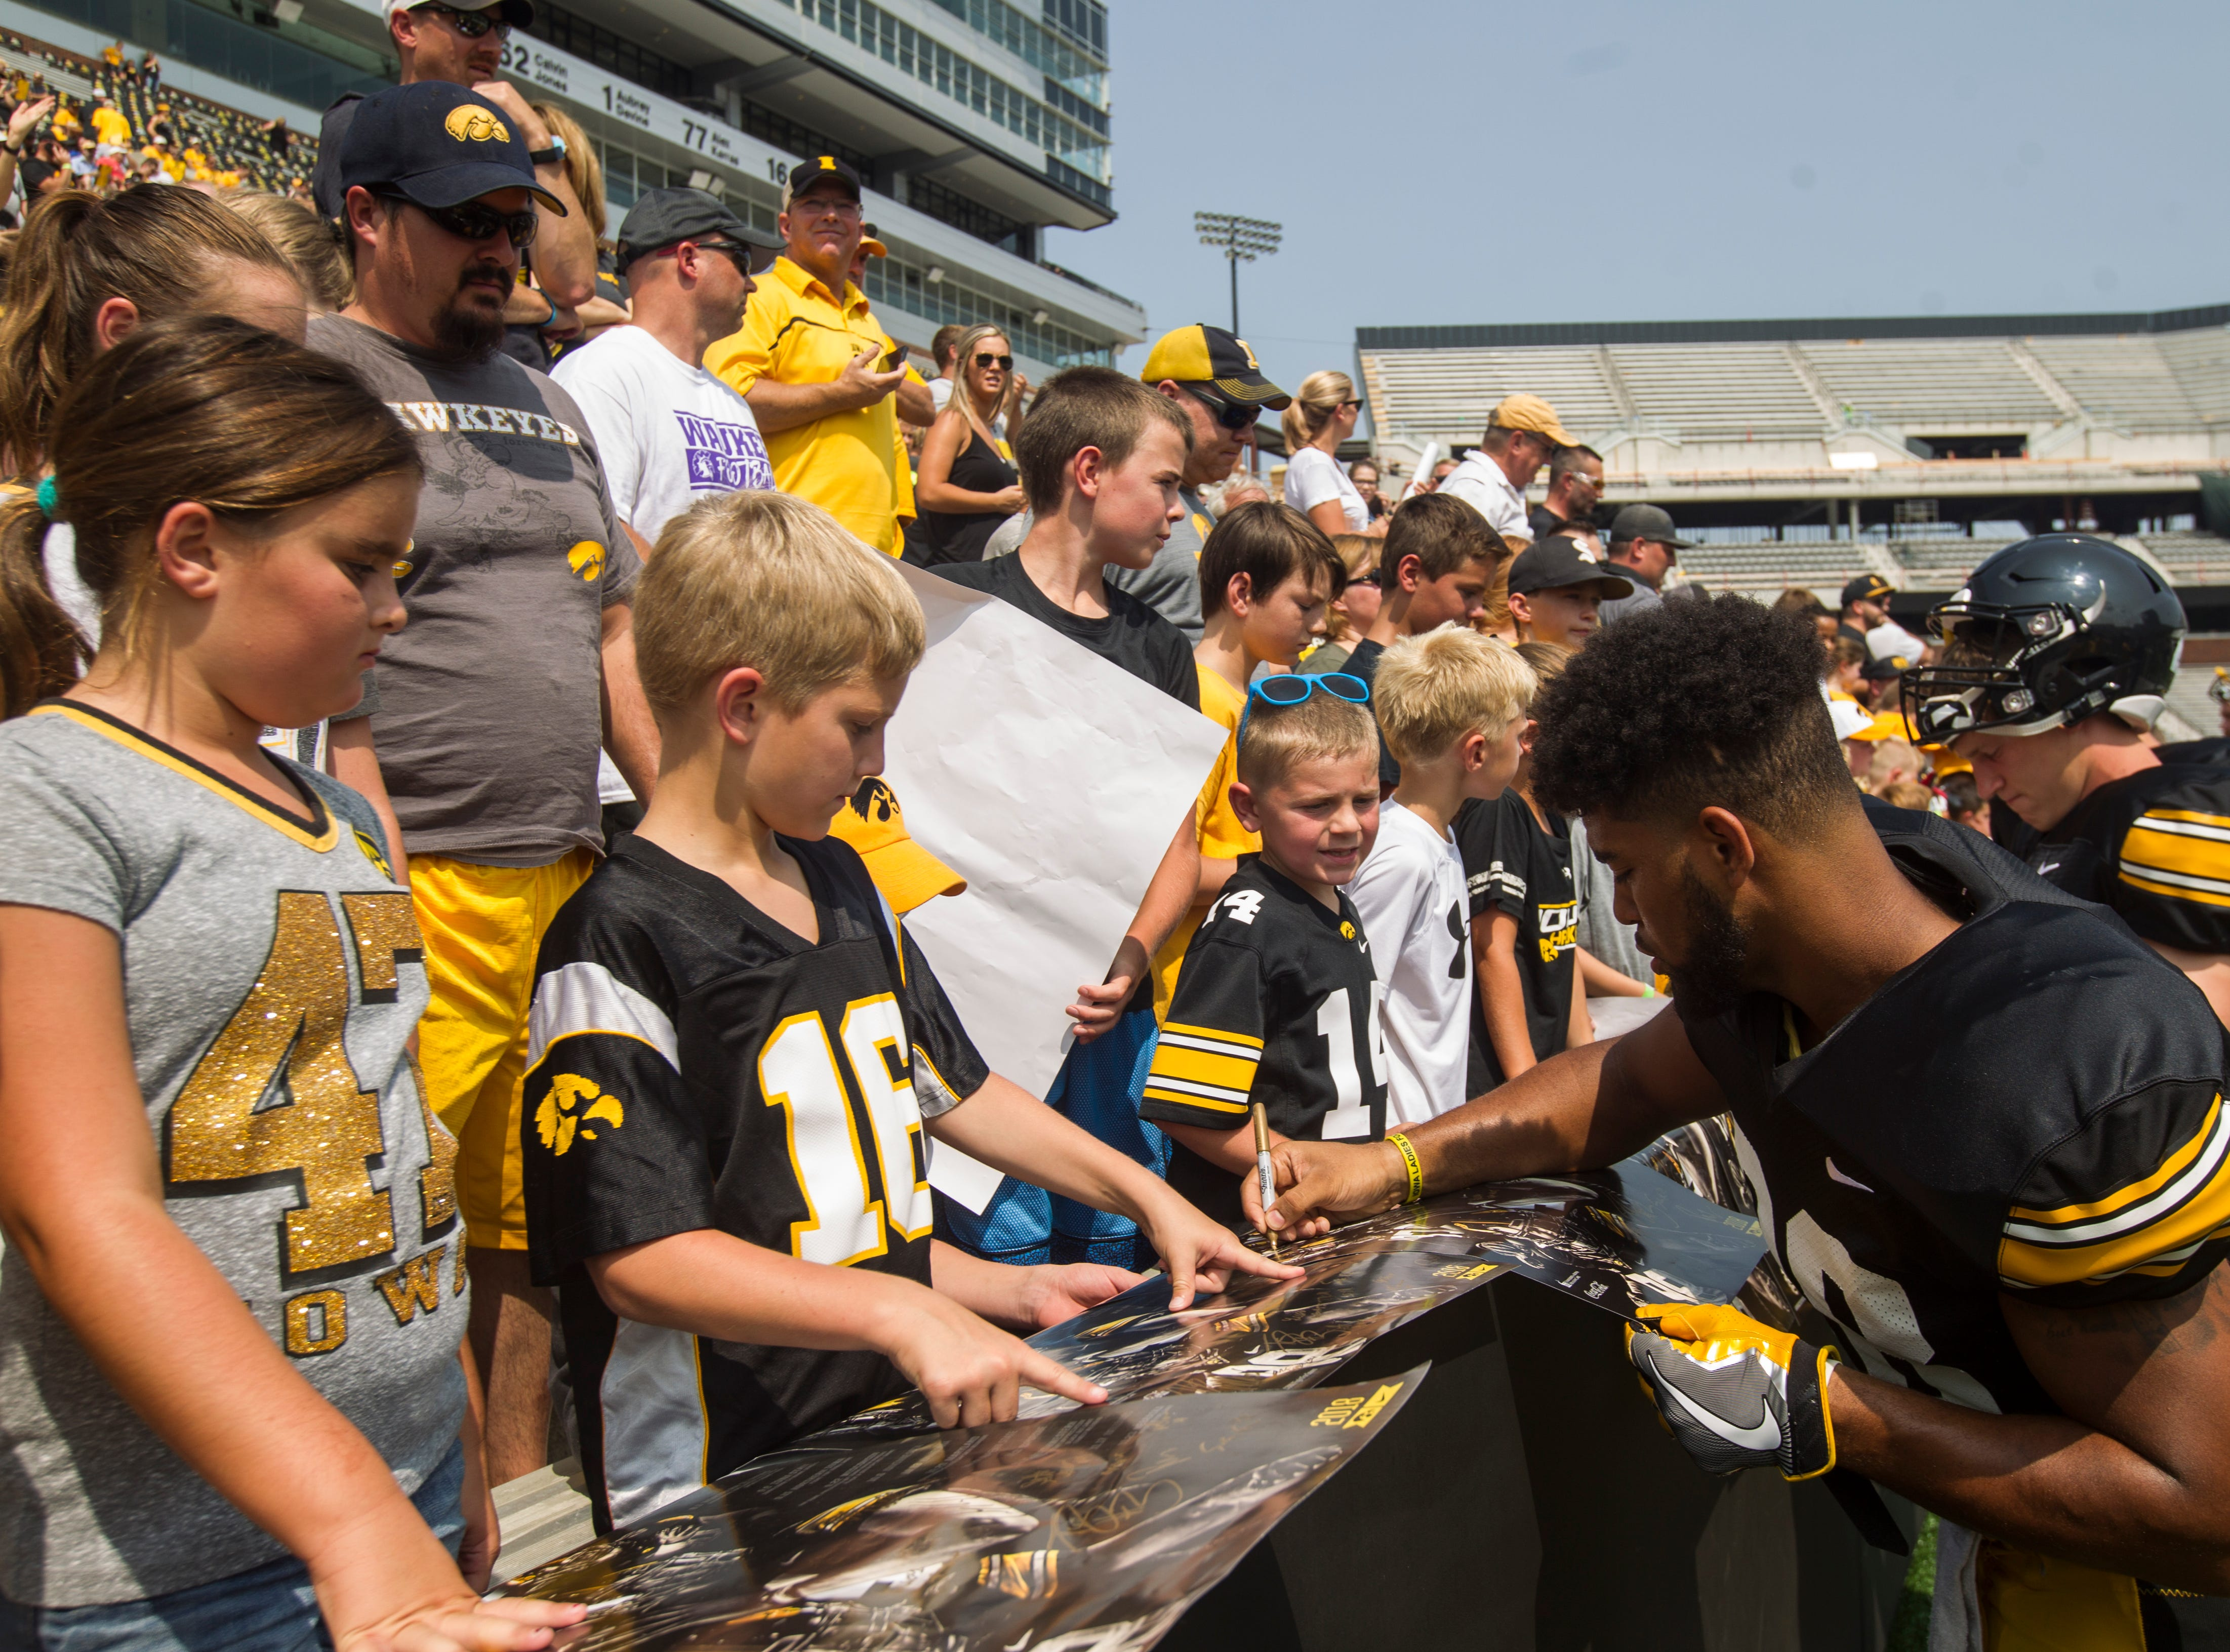 Iowa running back Toren Young signs autographs for fans during a Kids Day practice on Saturday, Aug. 11, 2018, at Kinnick Stadium in Iowa City.